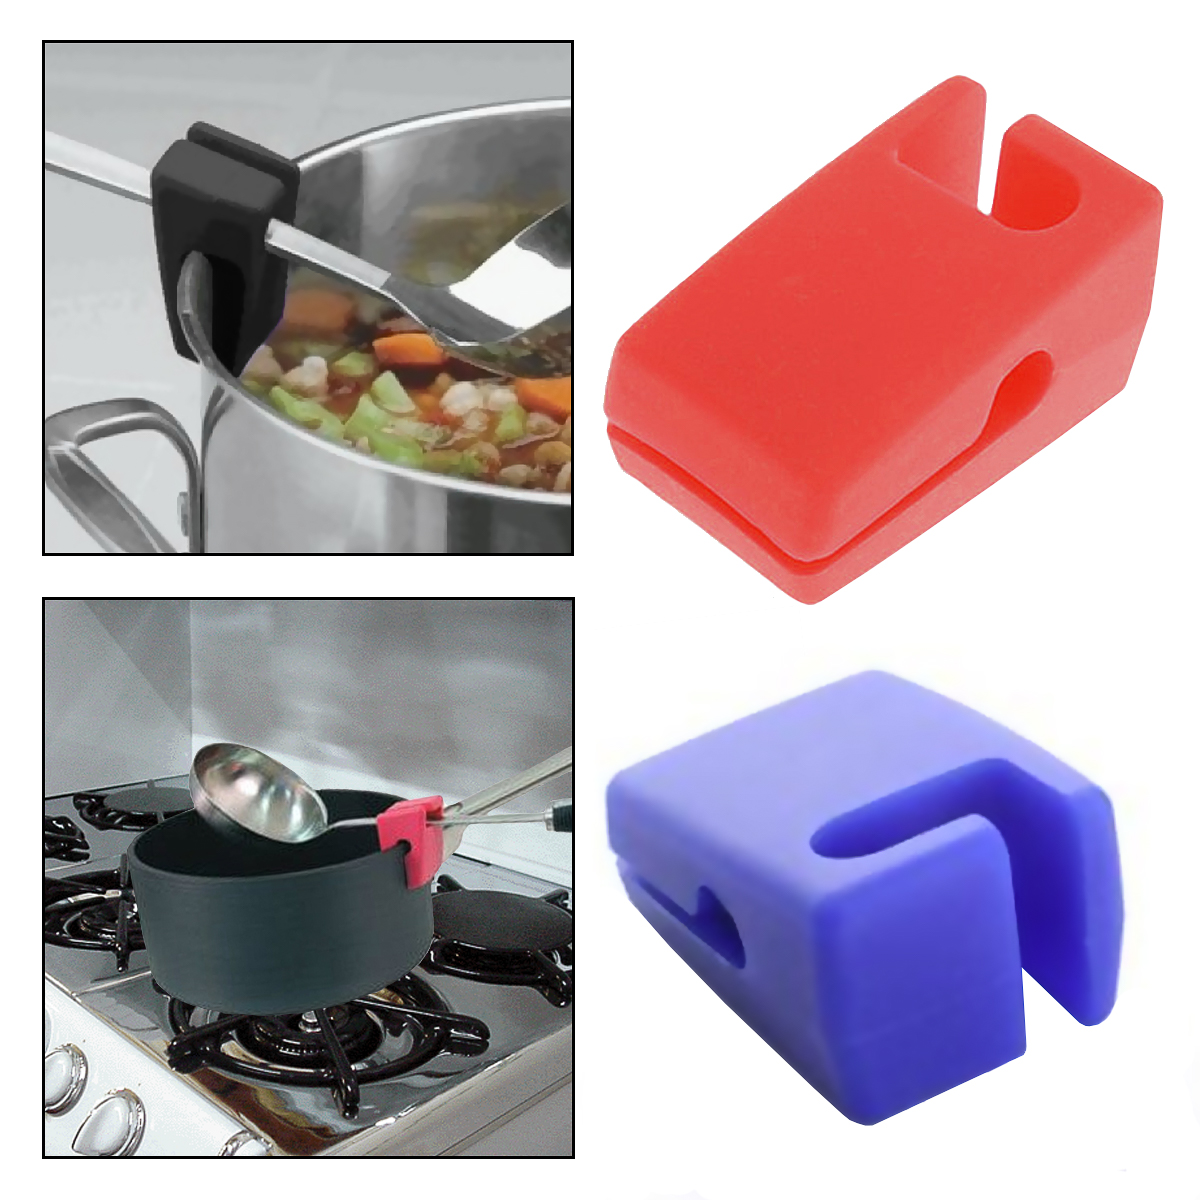 2 Evriholder Silicone Pot Clips Ladle Or Spoon Holder Rest For Stove Cooking